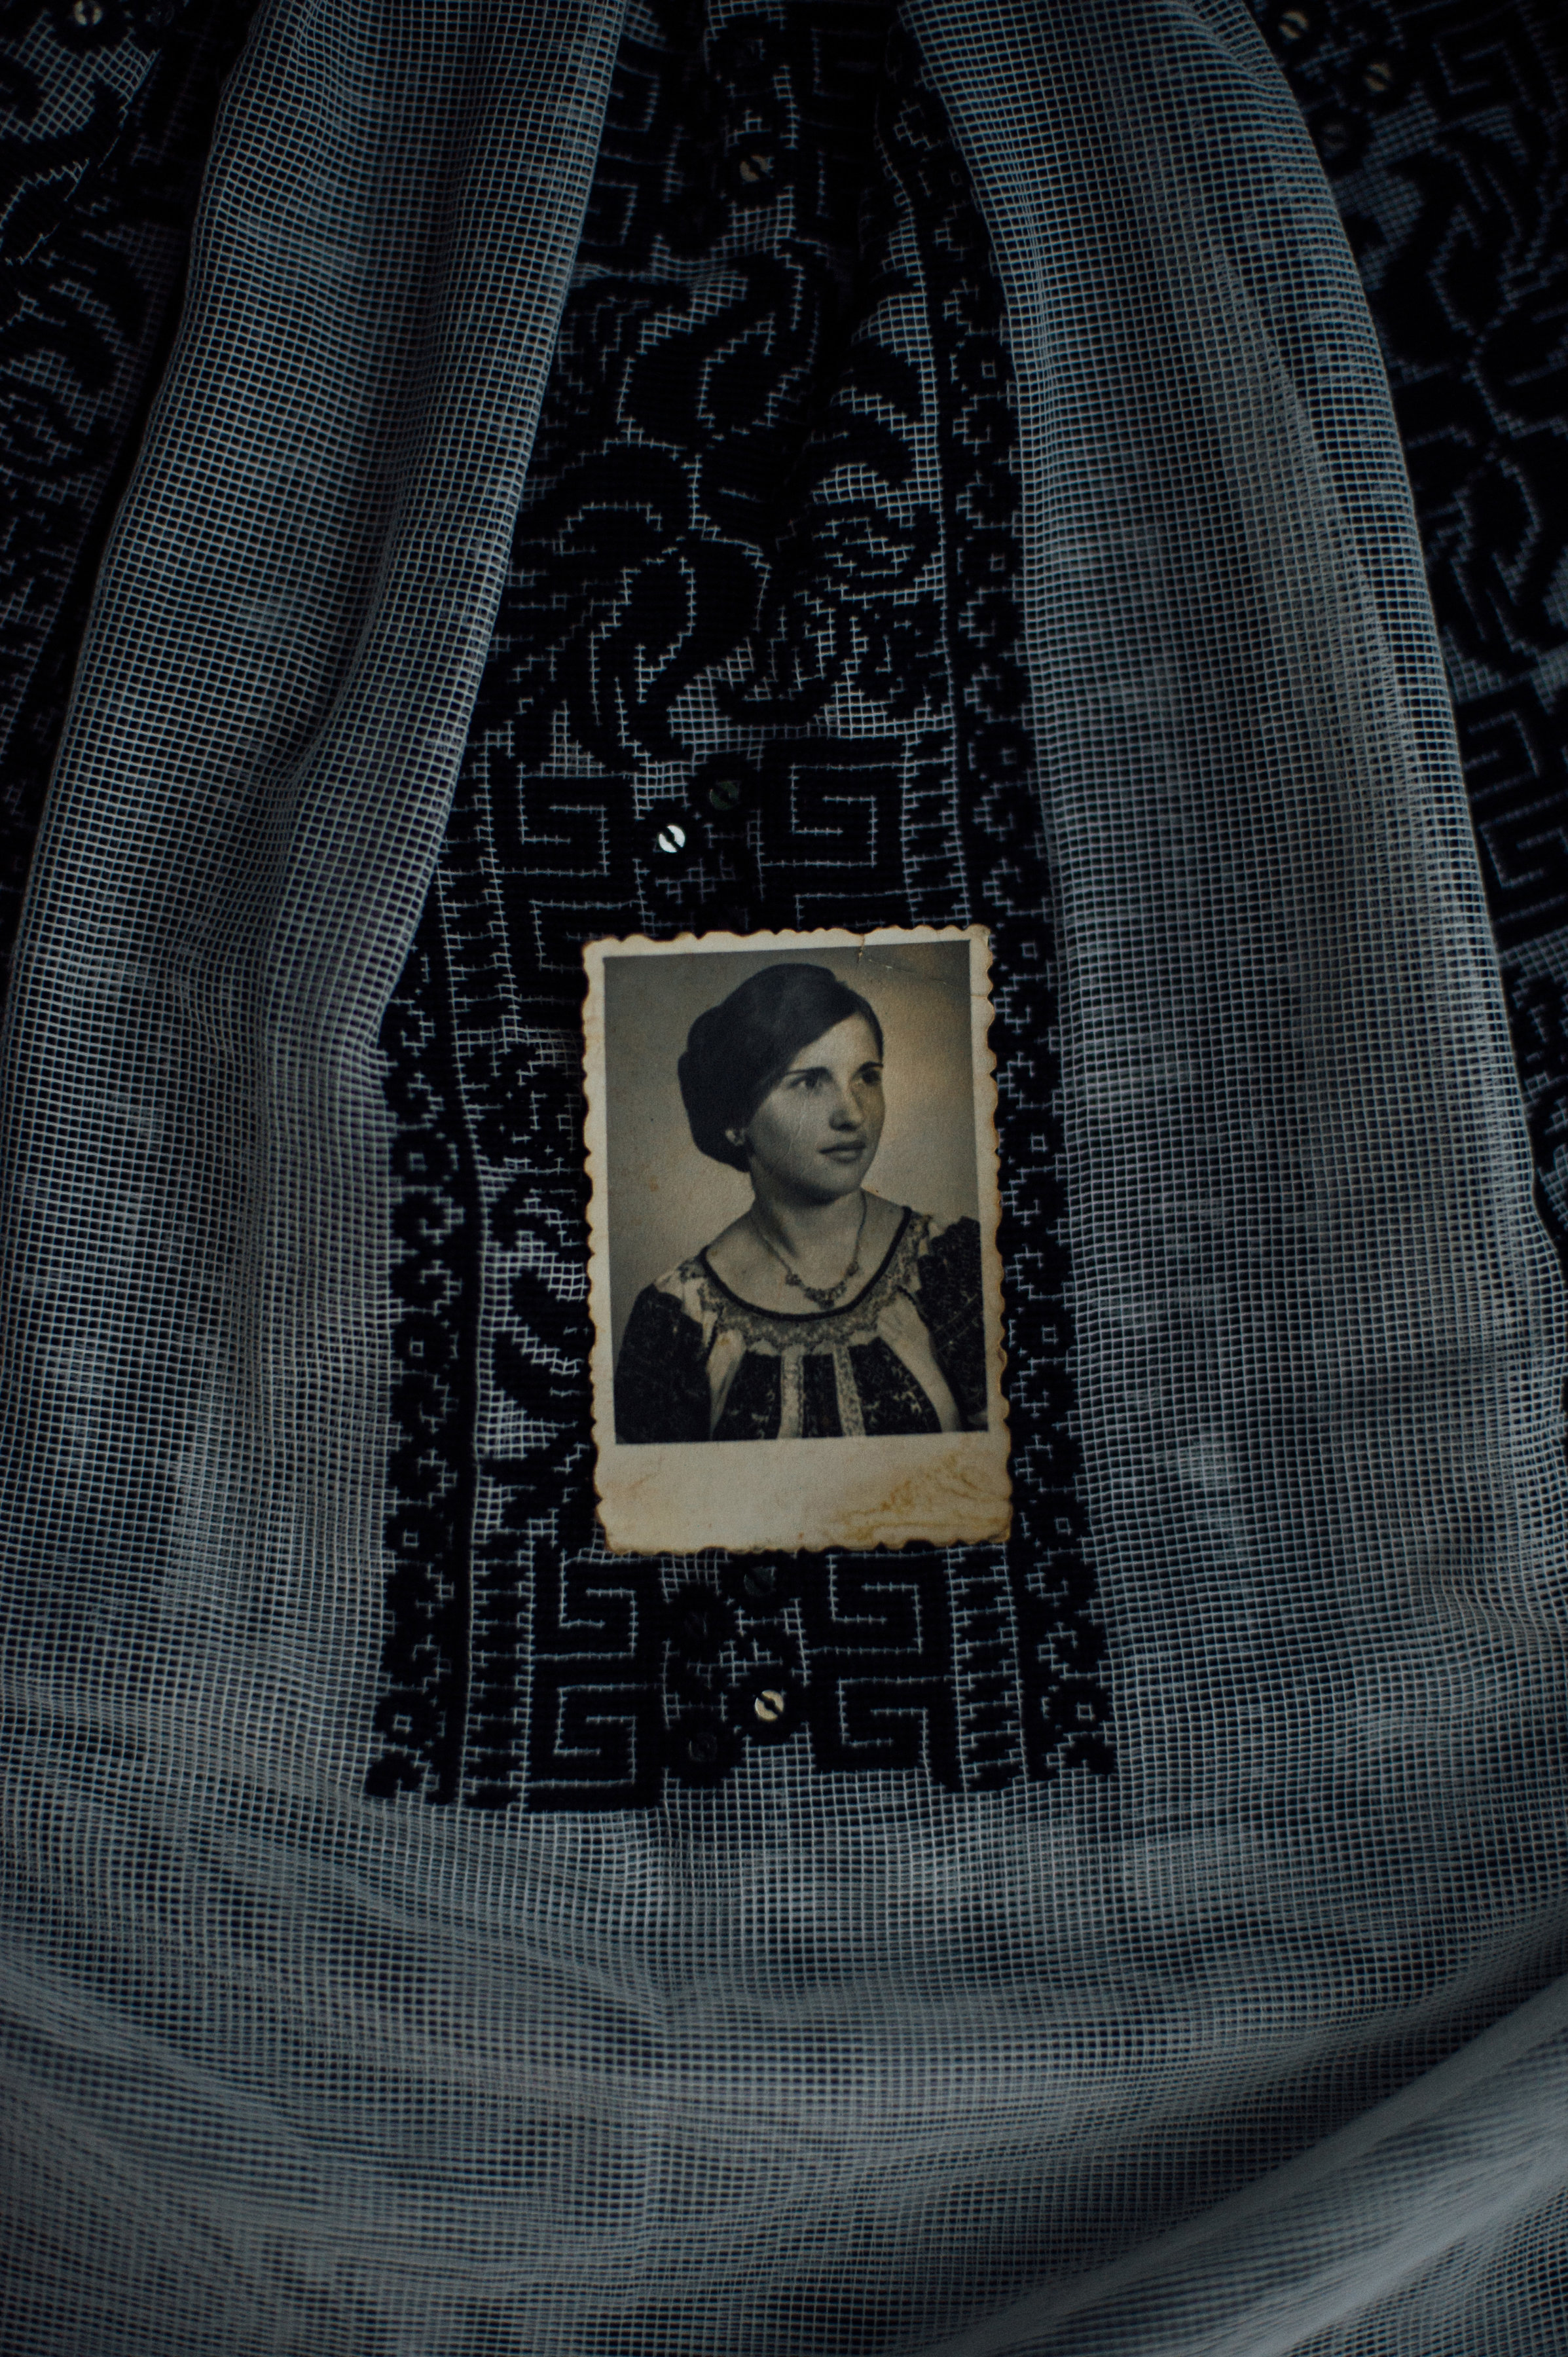 """A holiday blouse Adina's mother made and embroidered as a young girl was already special to her when she wore it for this portrait of her at 18. Adina loves these wearable traces of the past, pulling them out from time to time to wear for special occasions or to dress her girls in. She says, """"At one point in time I was thinking about framing them to preserve them, but that meant I won't be able to touch them anymore and I decided not too. I like to see them on my girls and tell them: 'This was made by my mother's hands.'"""""""